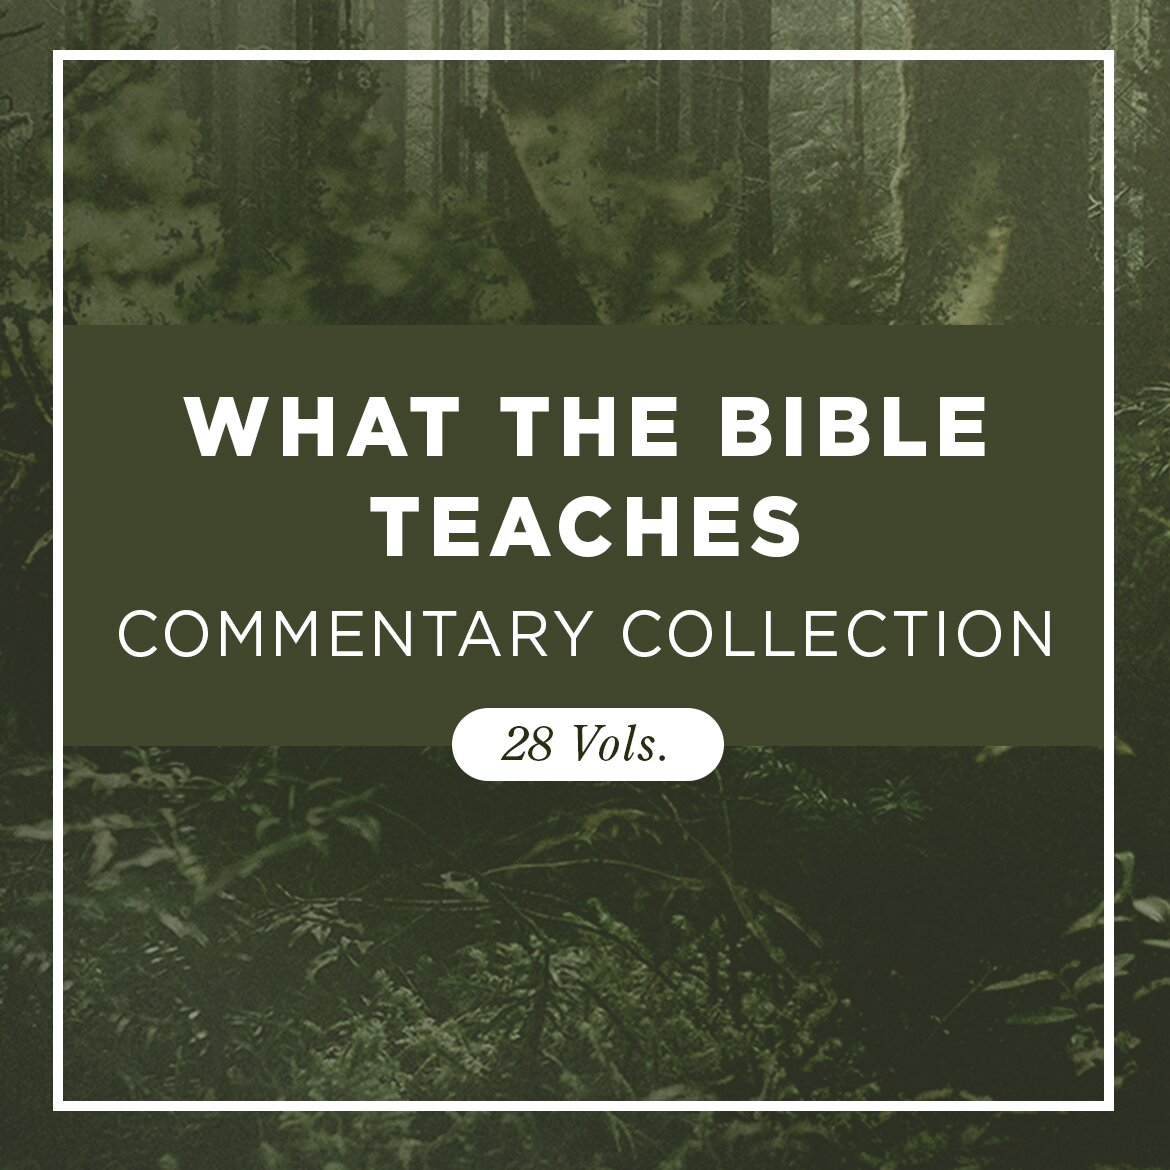 What the Bible Teaches Commentary Collection (28 vols.)